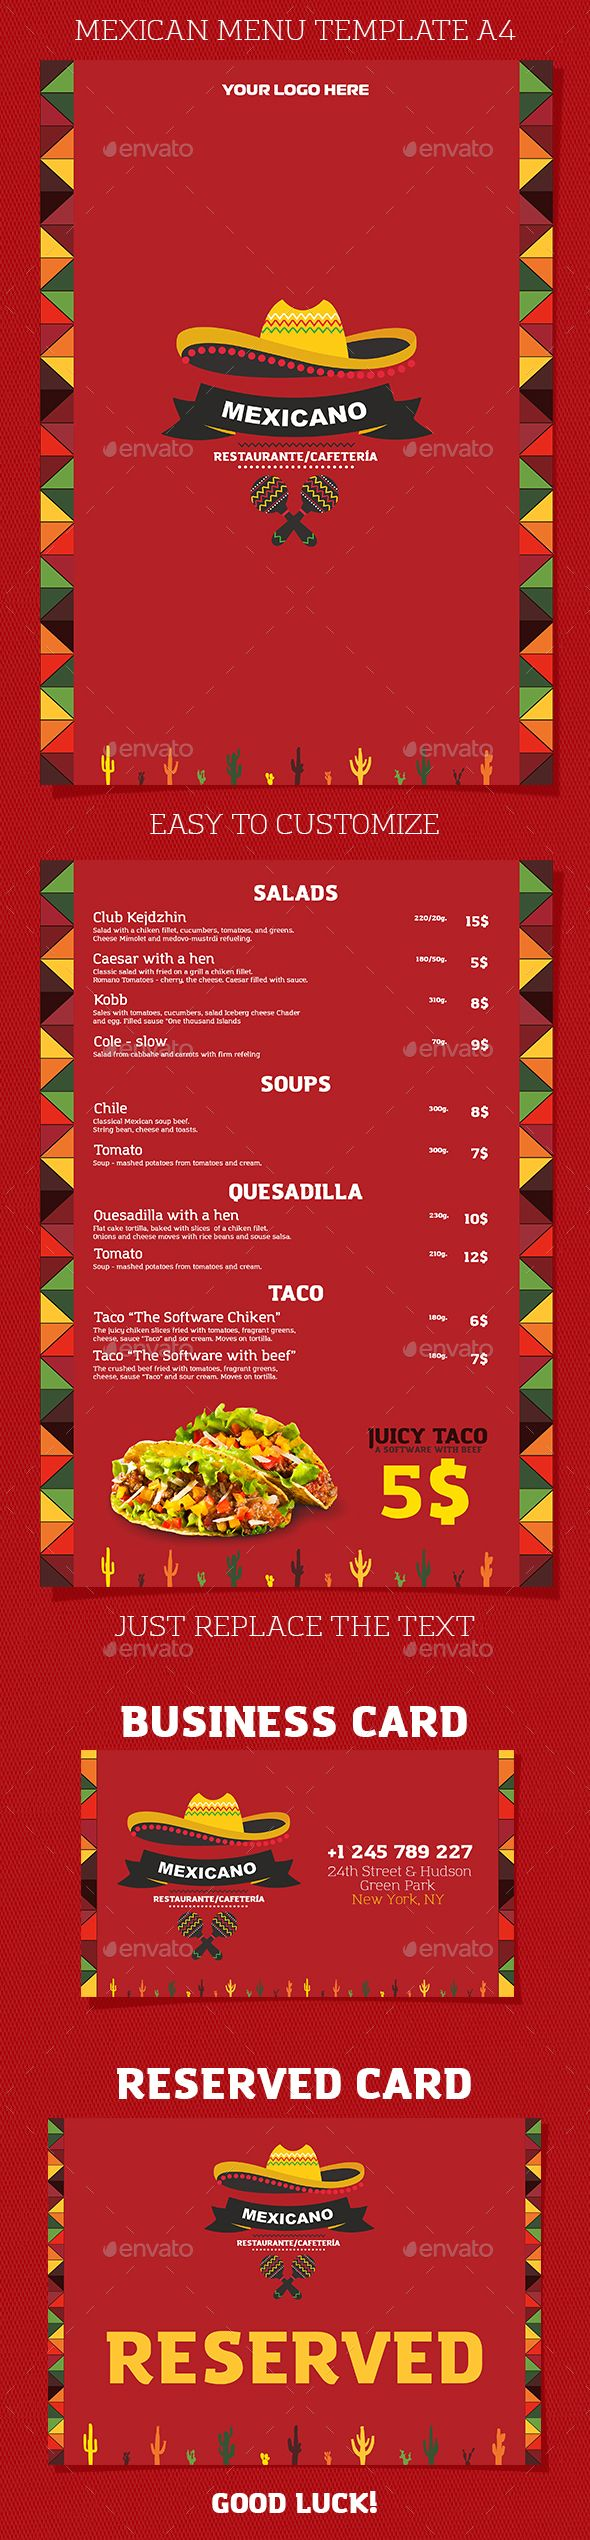 Mexican Restaurant or Cafe Menu  — PSD Template #latino #chili • Download ➝ https://graphicriver.net/item/mexican-restaurant-or-cafe-menu/17965794?ref=pxcr